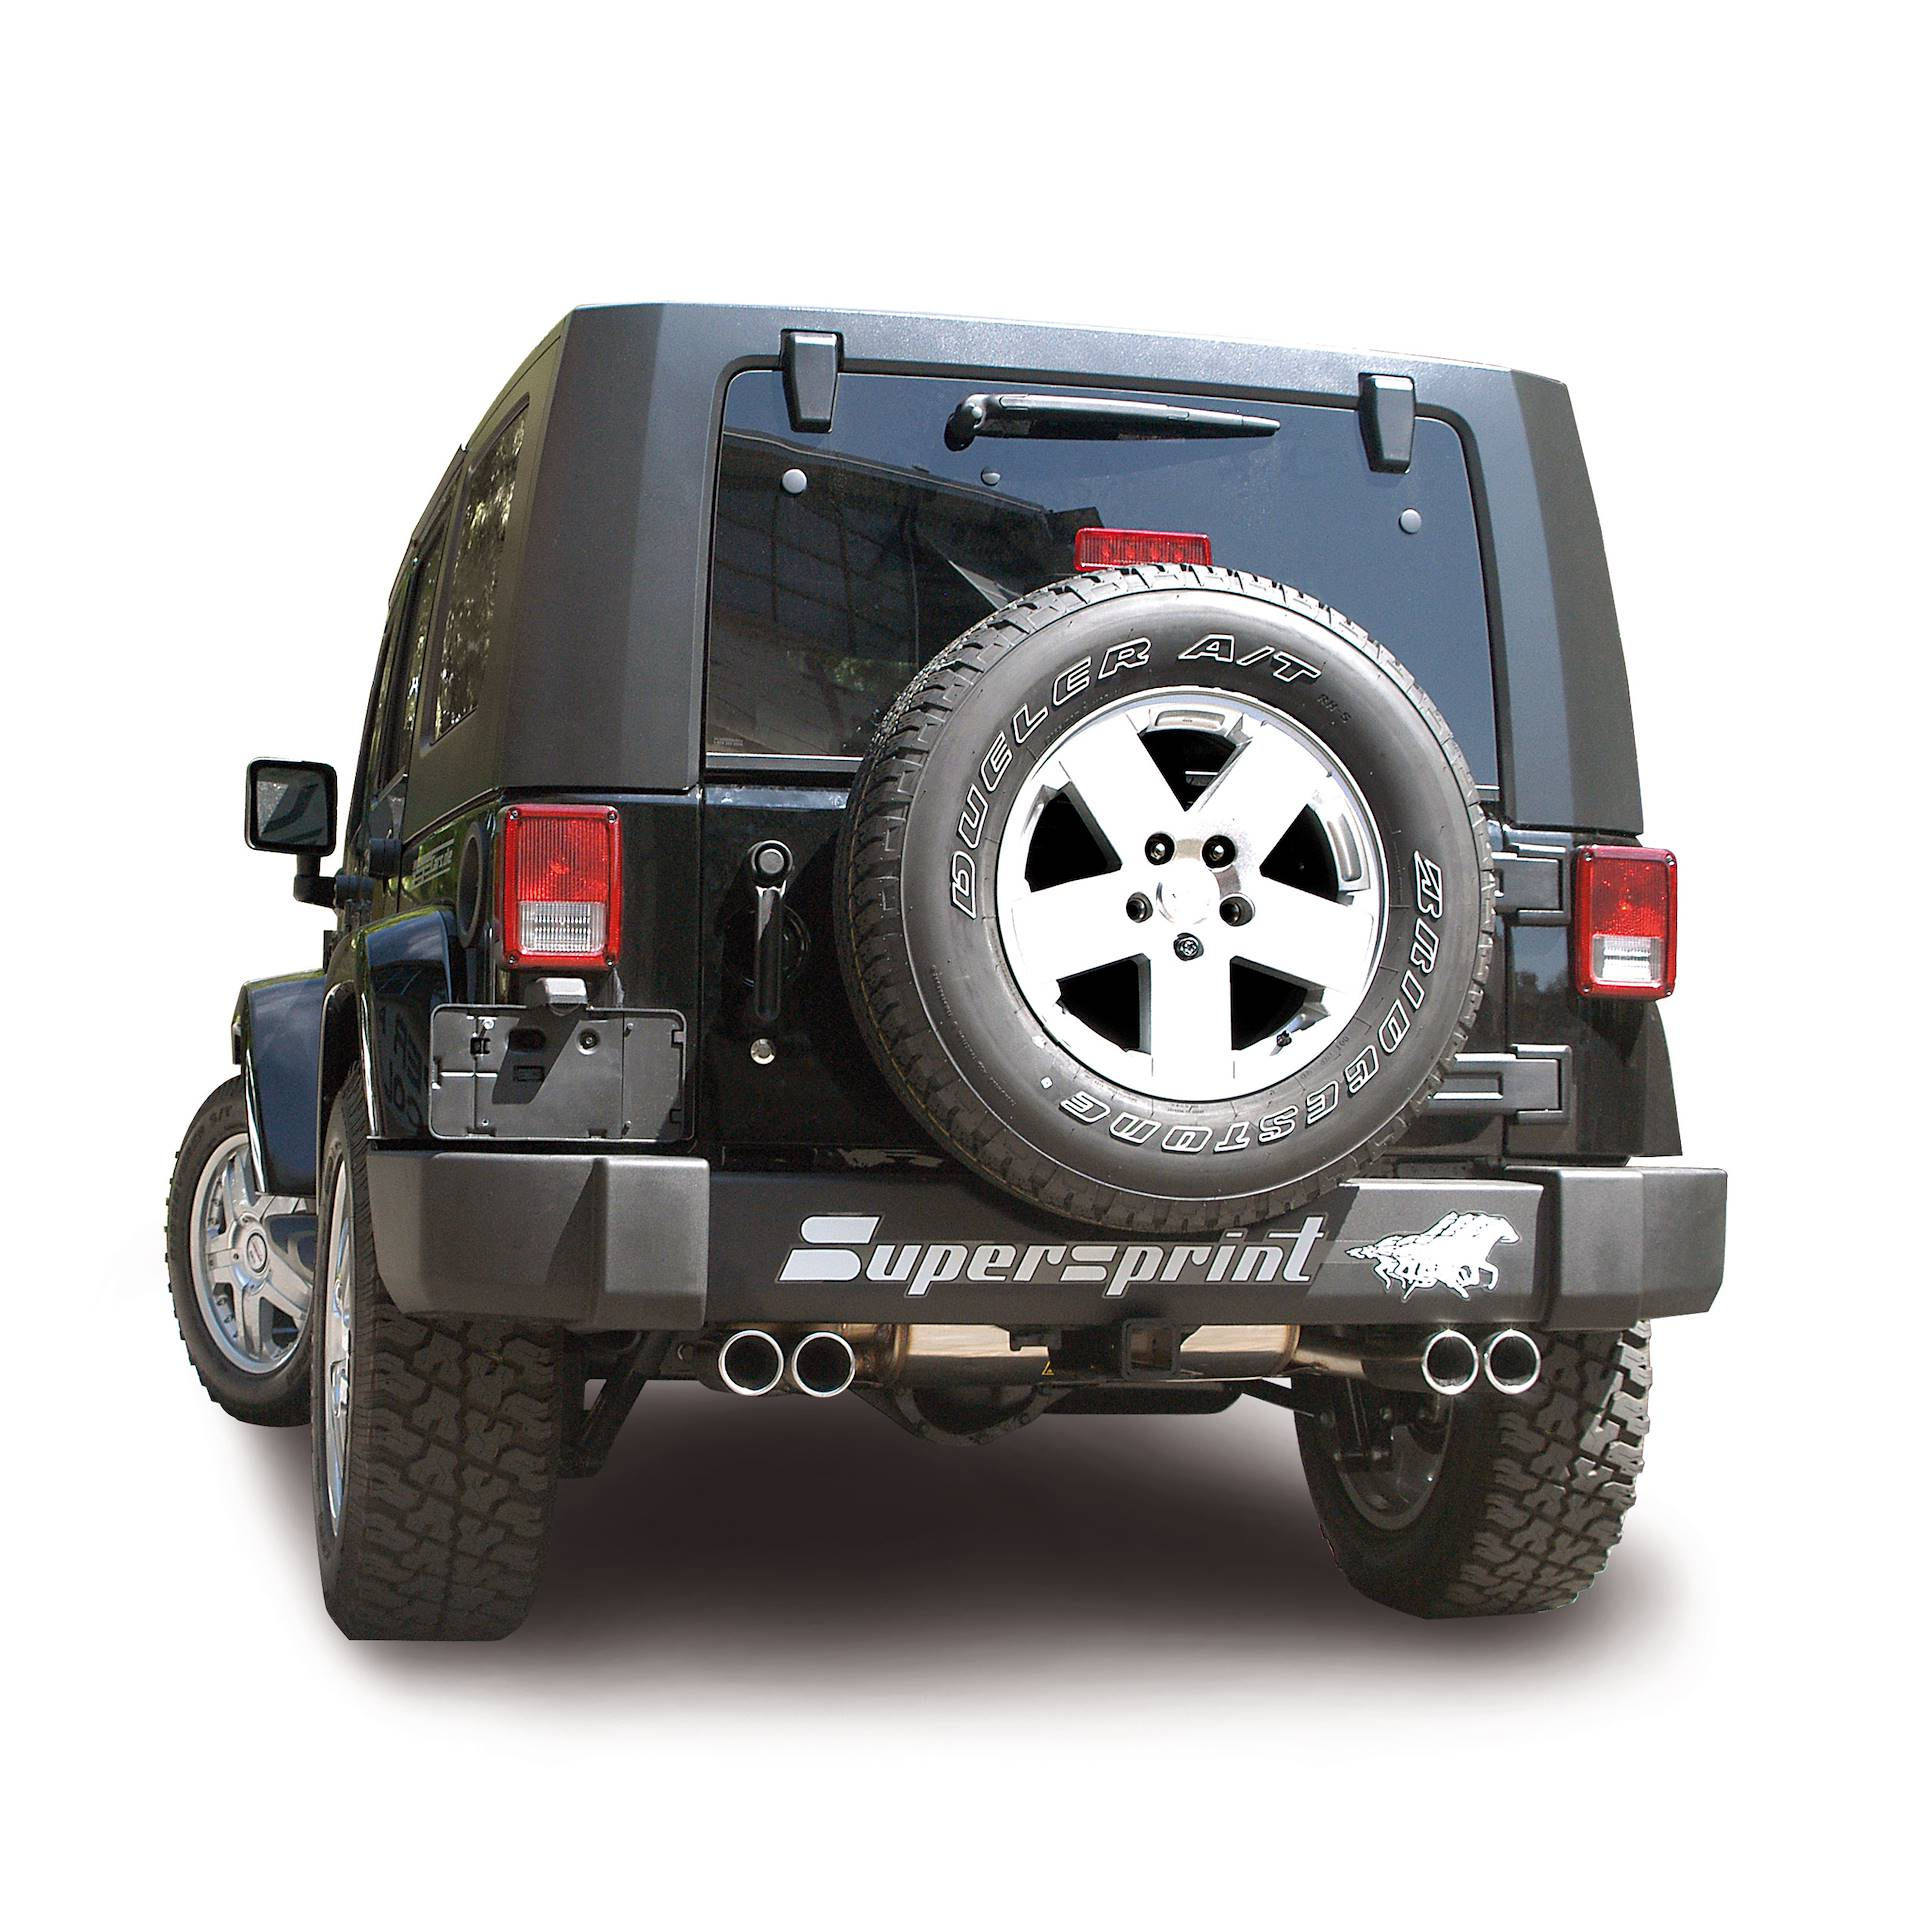 Jeep - JEEP WRANGLER UNLIMITED 4p. 3.8i V6 '07 -> '11